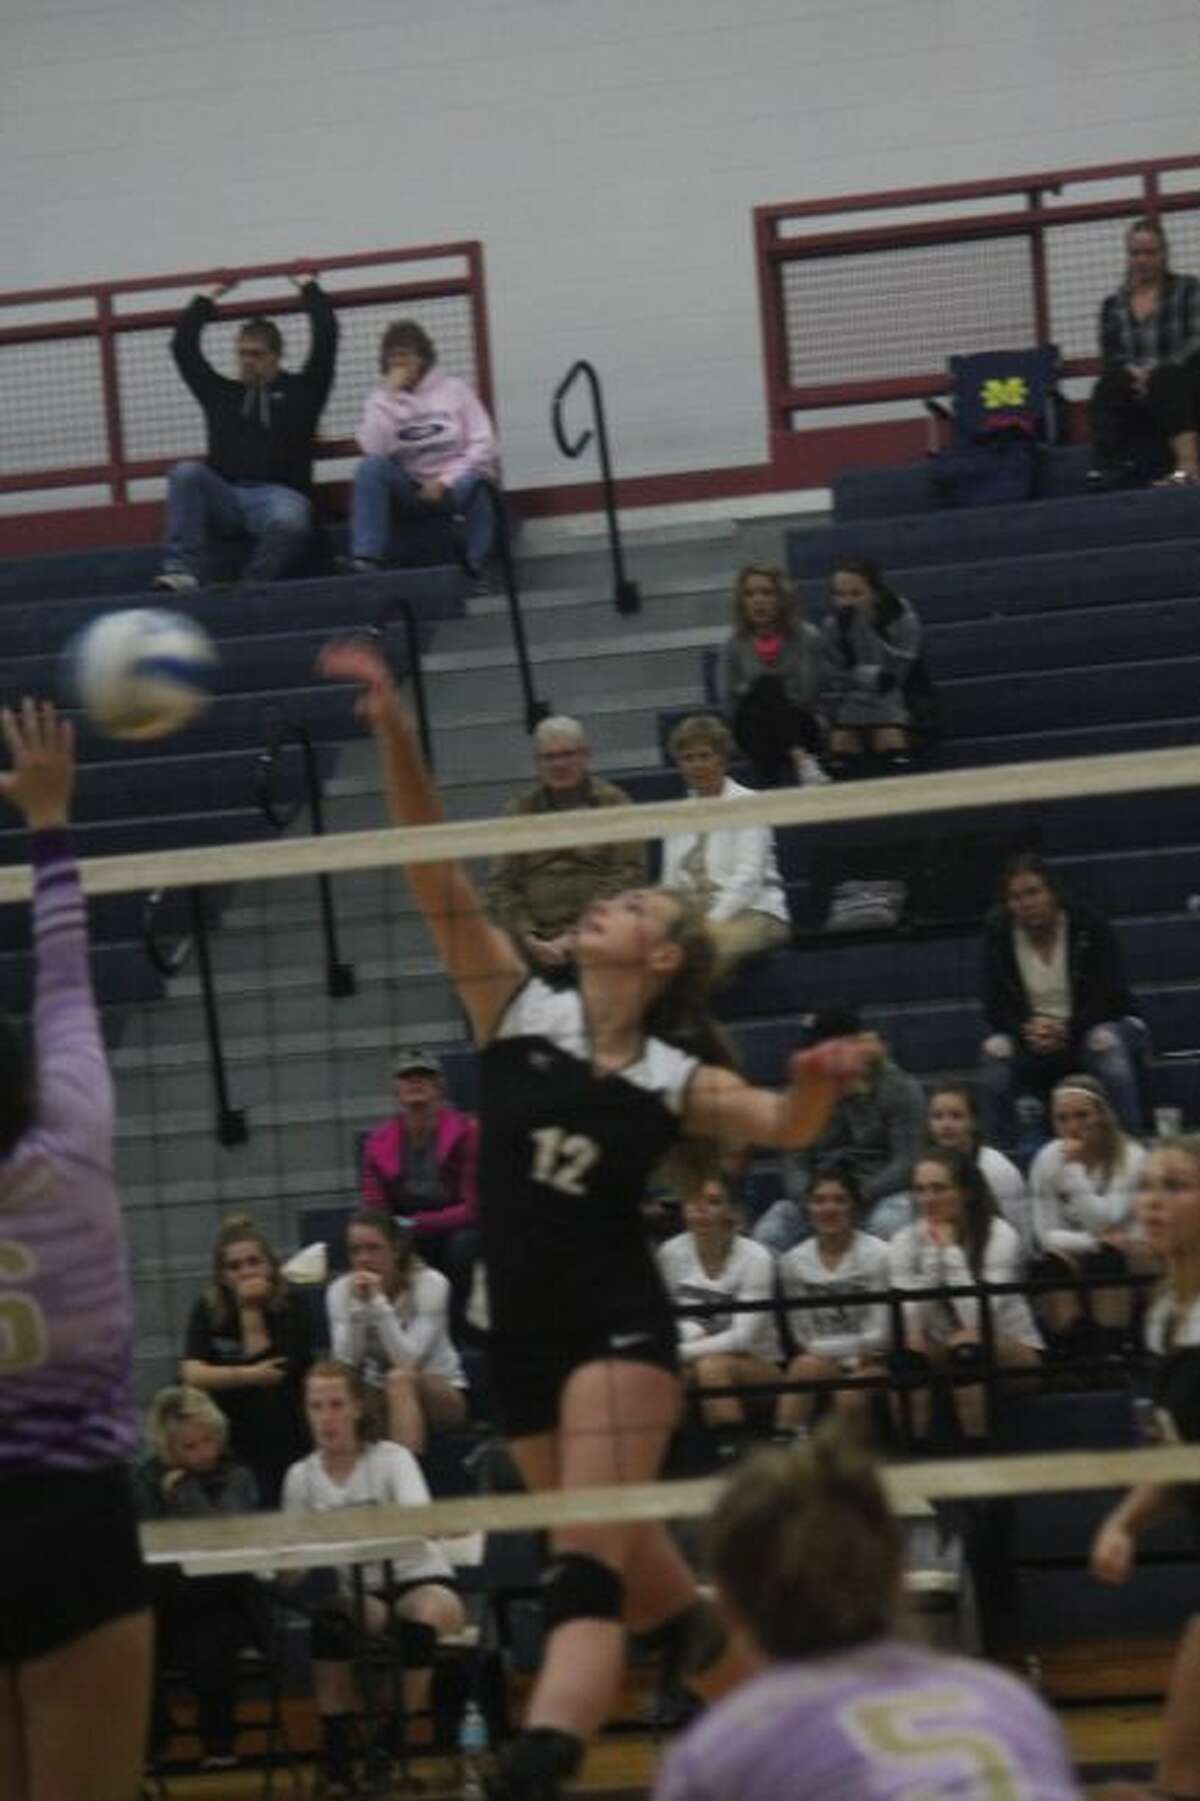 Alison Duddles makes a play at the net for Reed CIty.